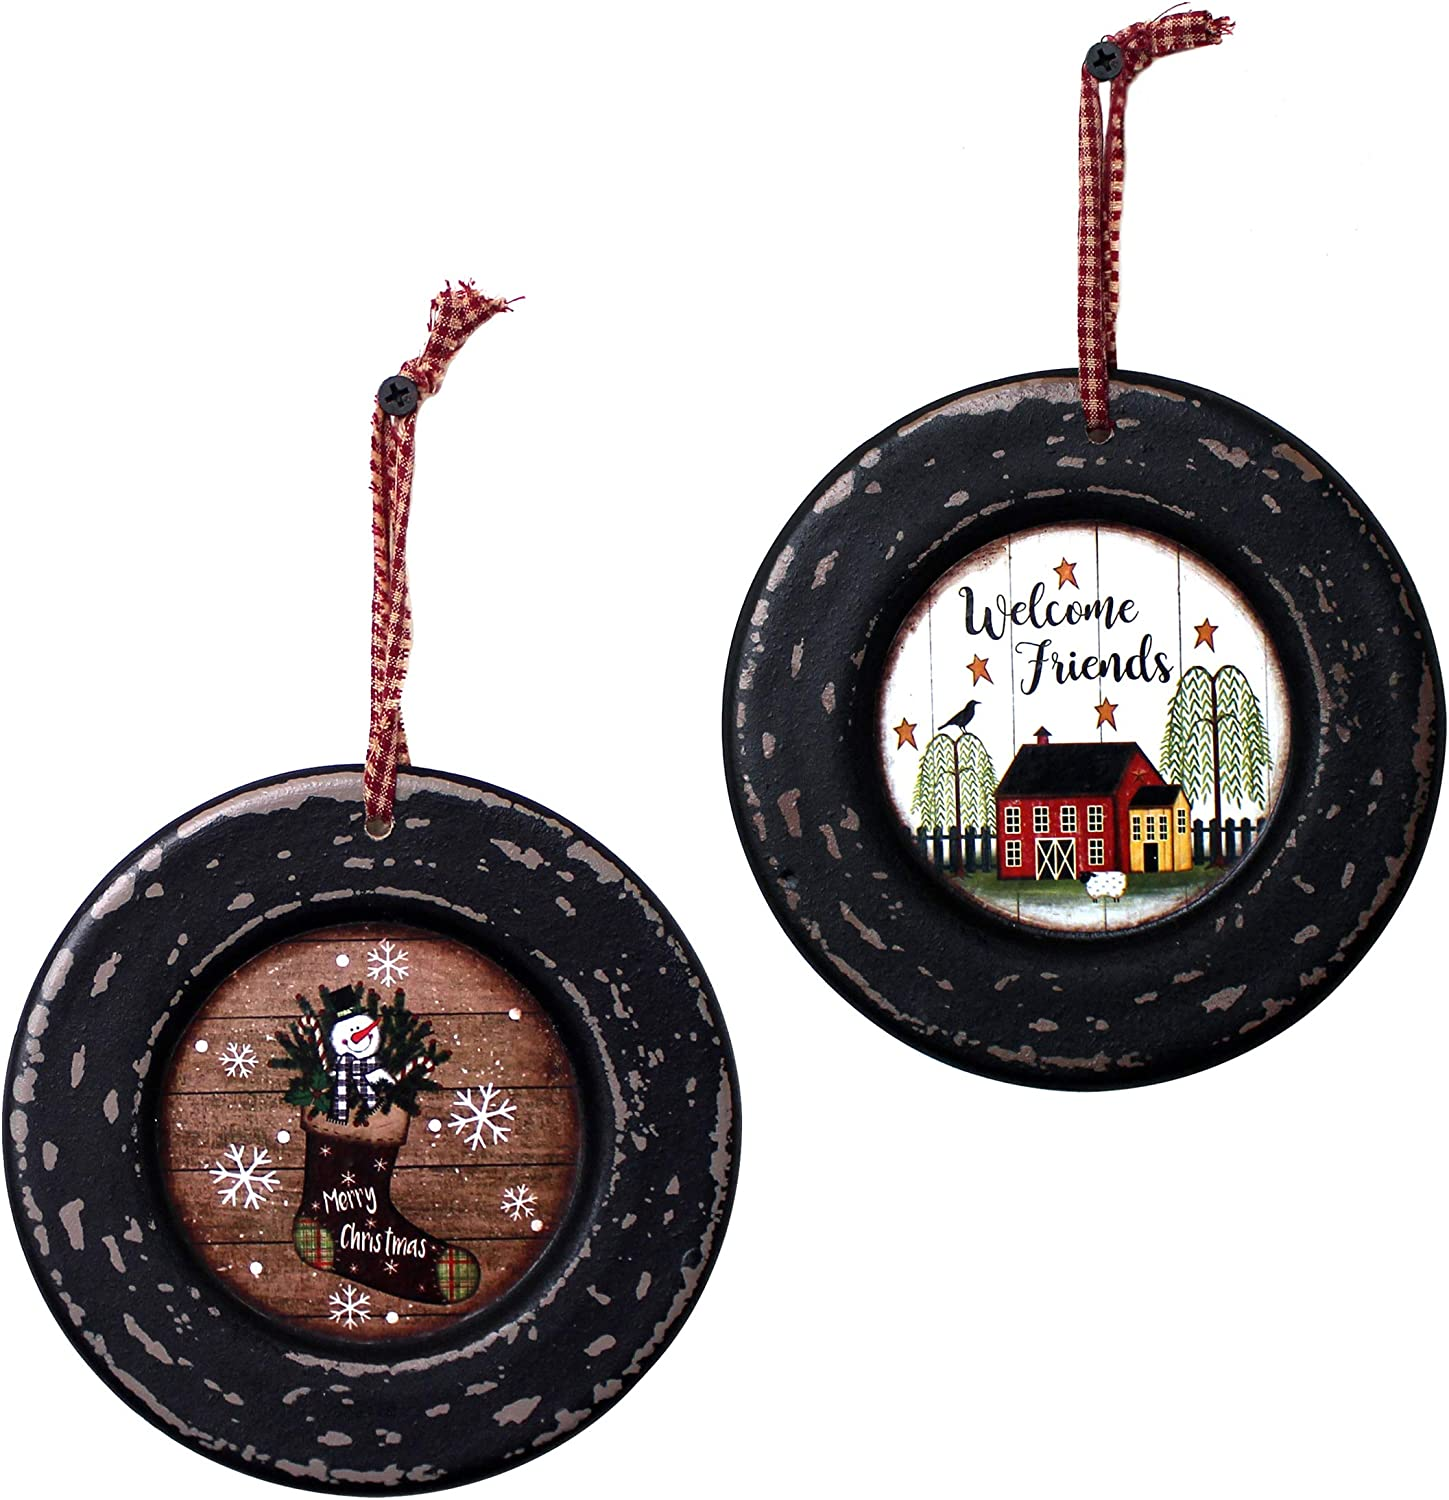 CVHOMEDECO. Primitives Rustic Homespun Hanging Decorative Plates Christmas Tree/Wall Hanging Décor Art, 5-3/4 Inch, Set of 2 (Boot & Farmhouse)